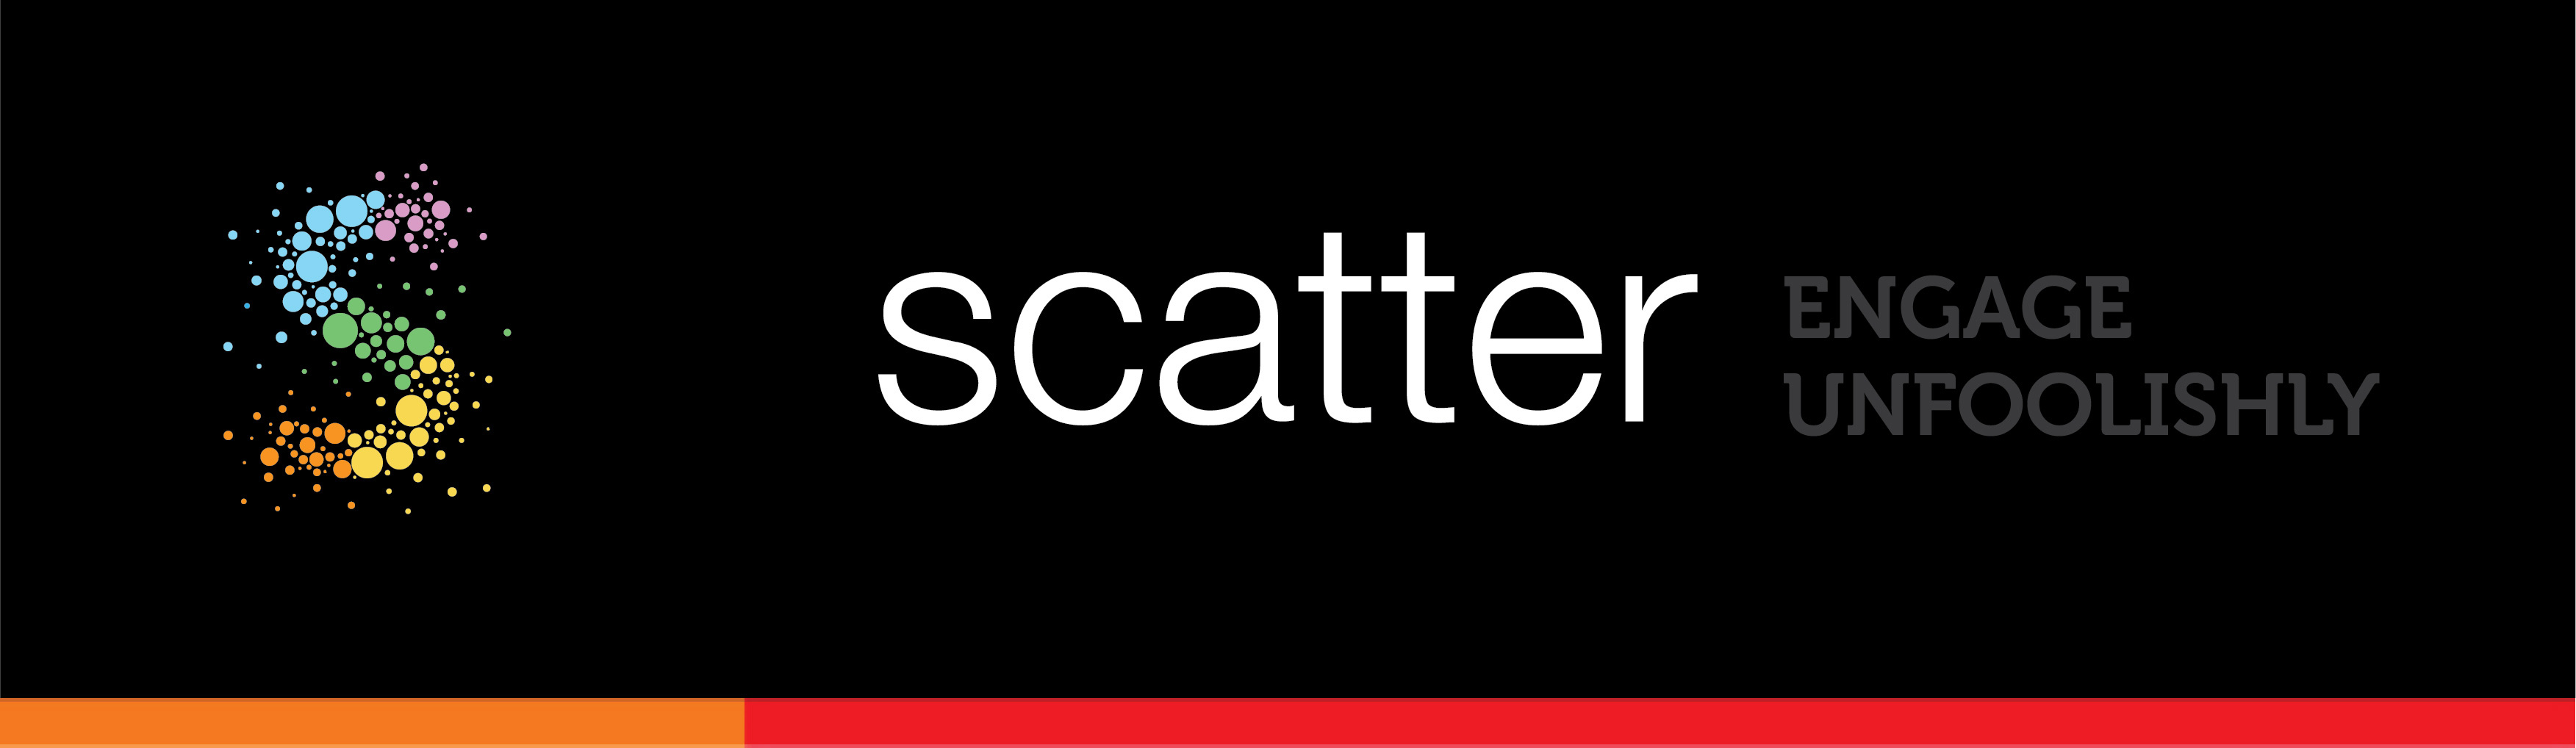 I Like and Subscribe to SCATTER newsletter